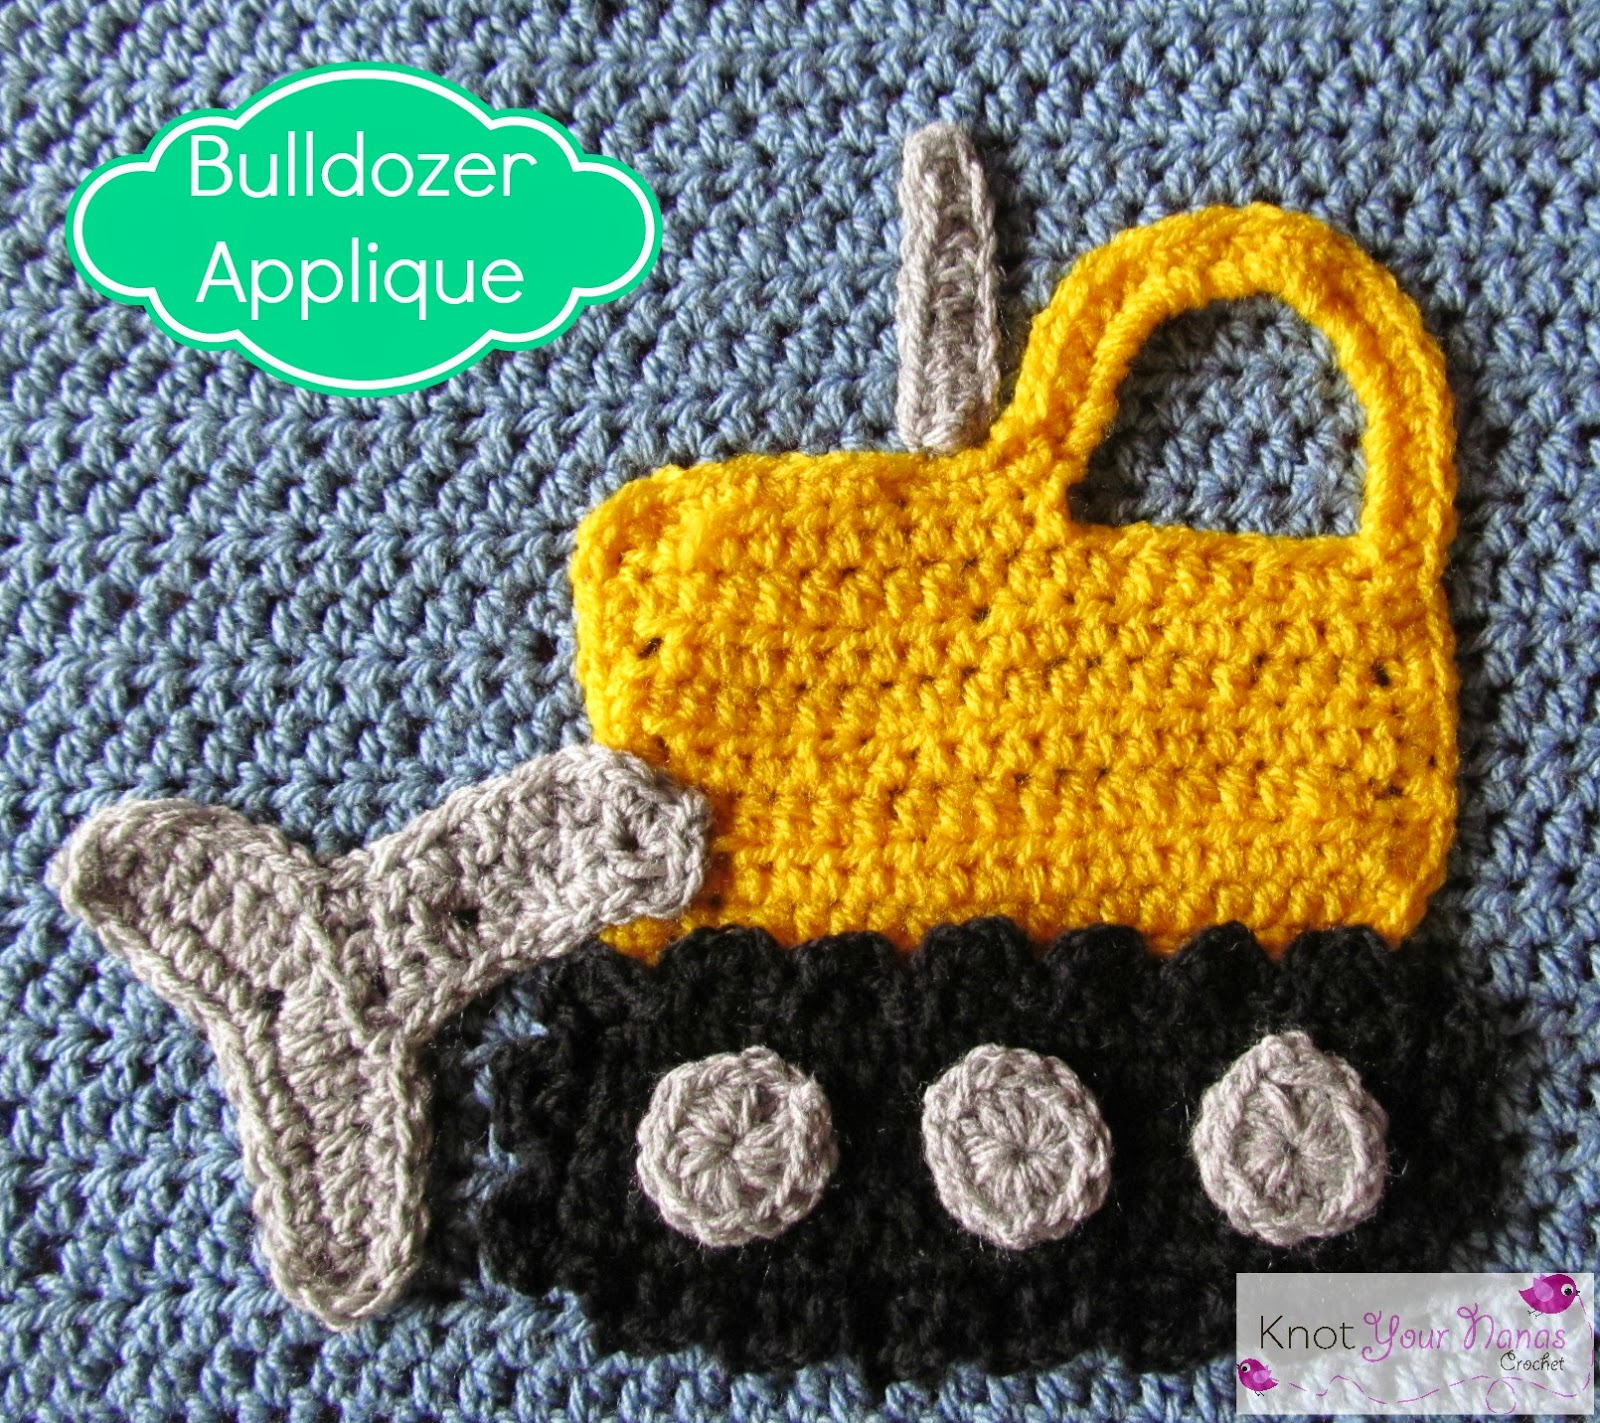 Crochet-Bulldozer-Applique